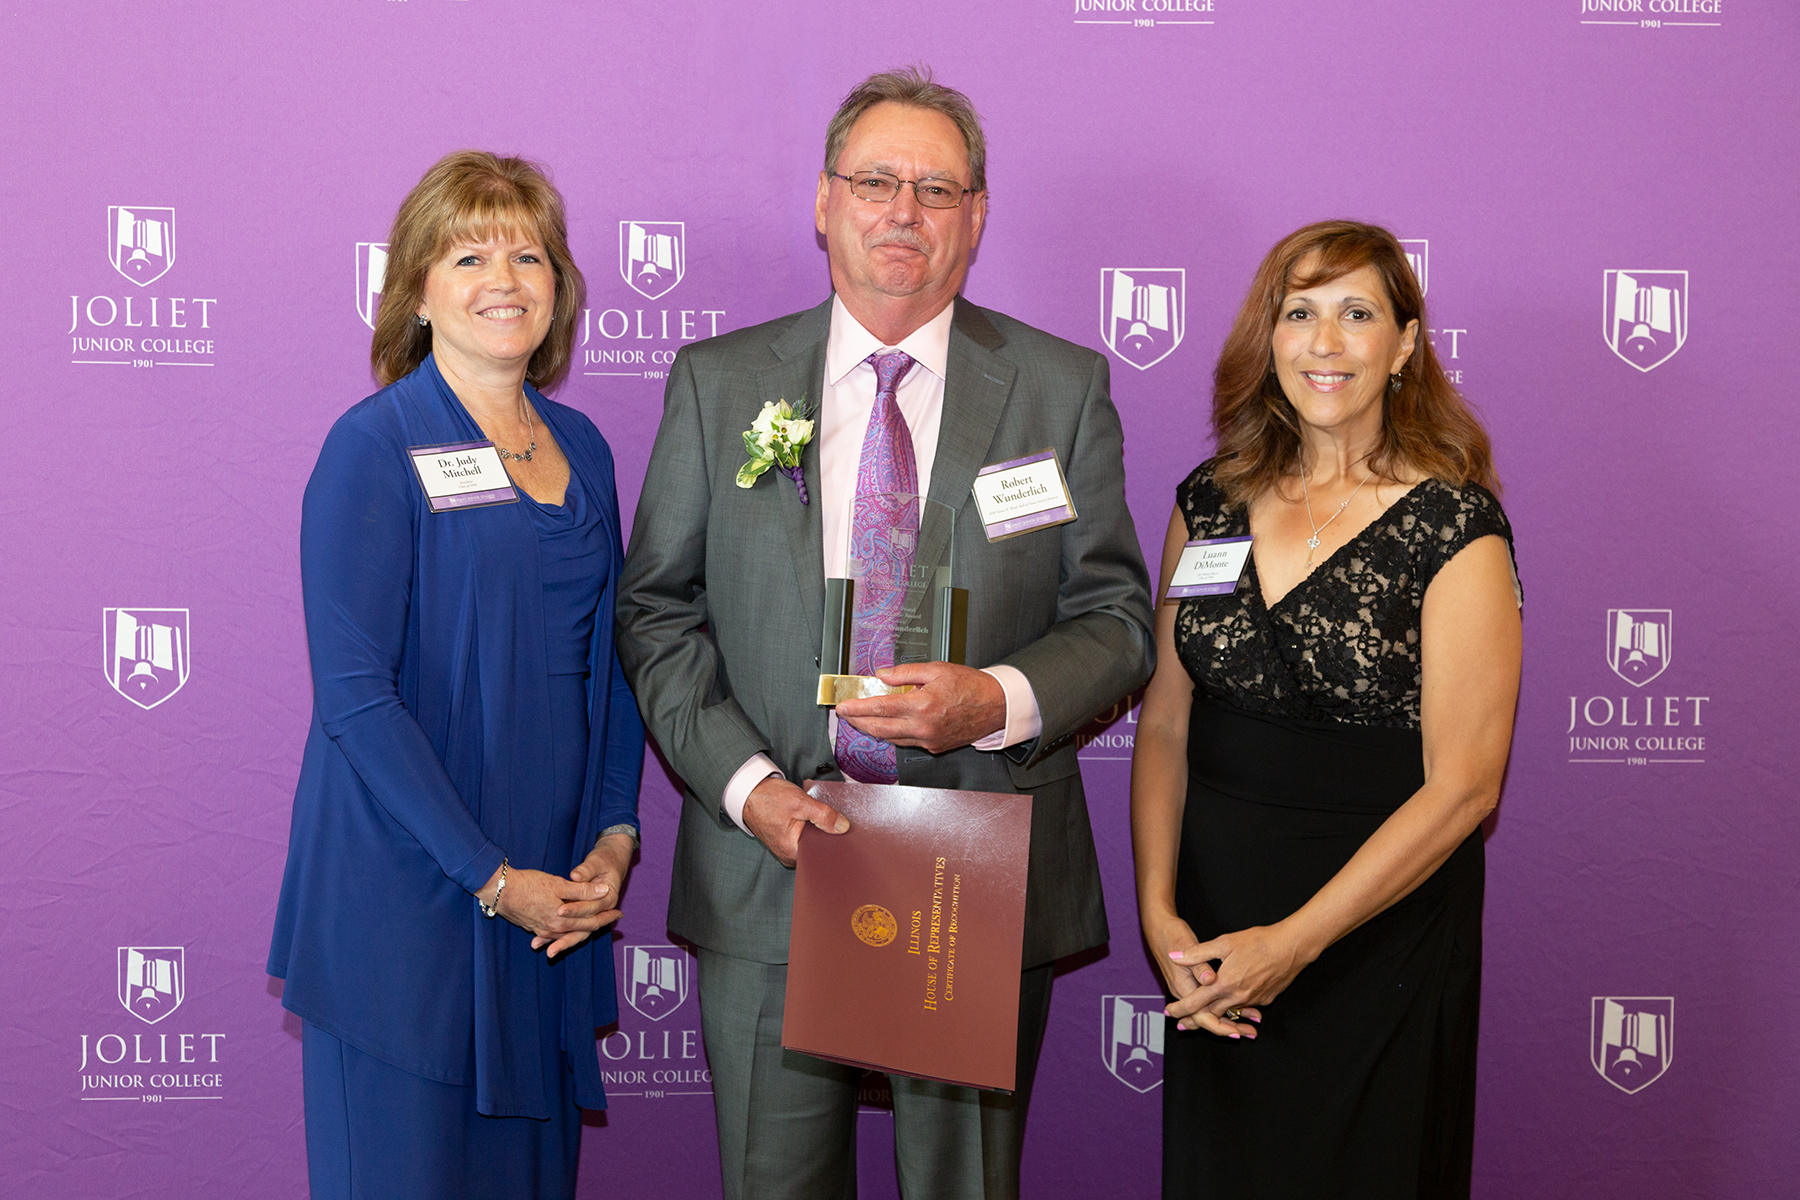 From left: JJC President Dr. Judy Mitchell, Robert Wunderlich (Susan H. Wood Hall of Fame Award recipient), JJC Alumni Board Member Luann Di Monte